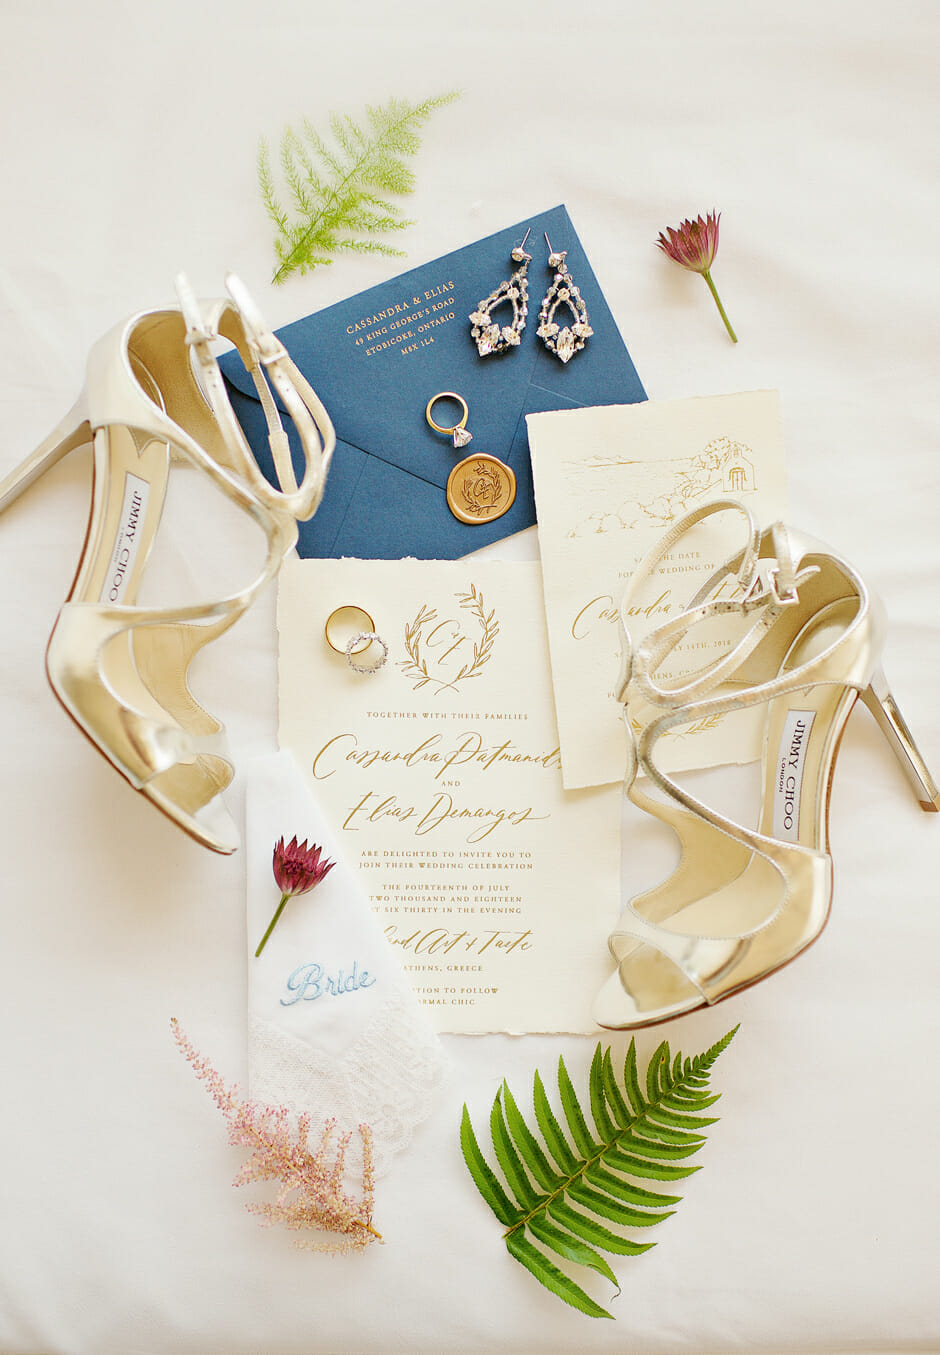 jimmy Choo show with wedding stationery in athens riviera wedding